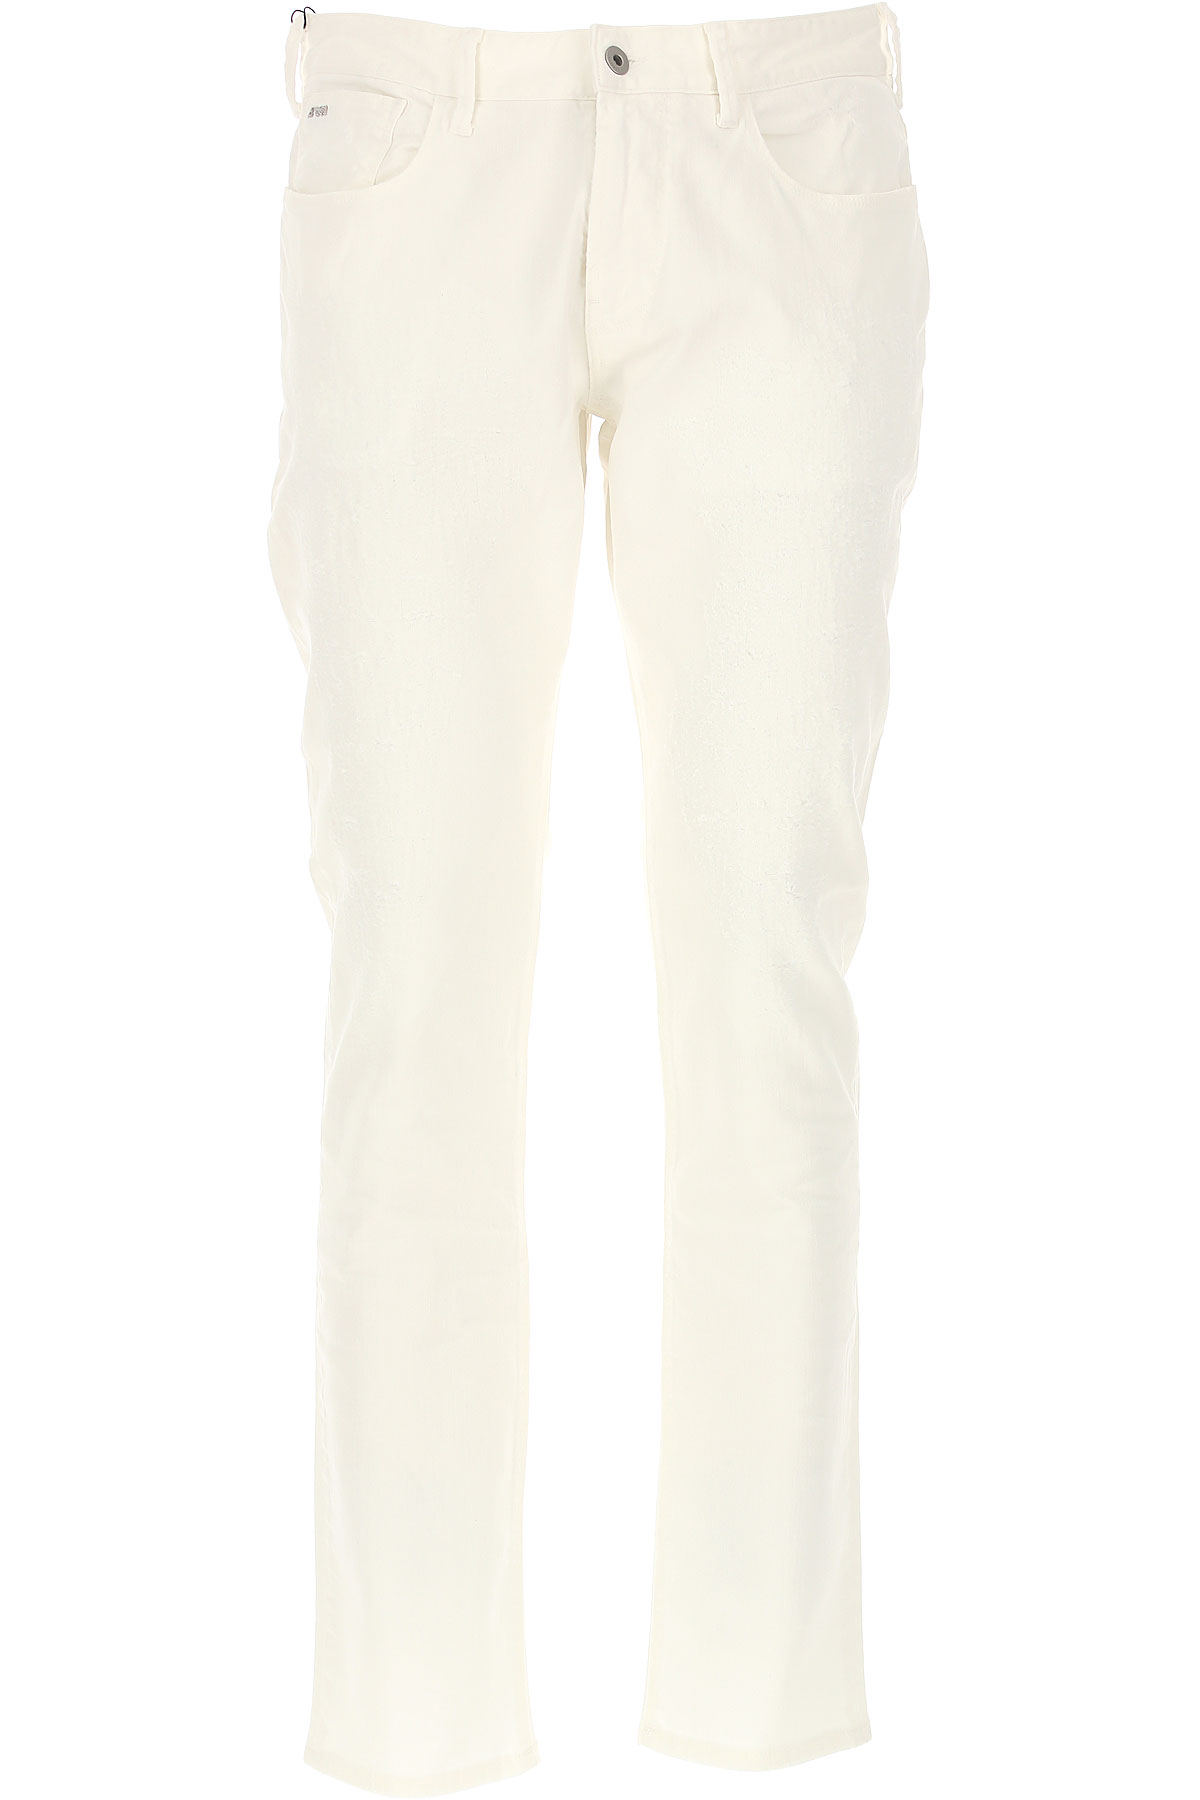 Emporio Armani Jeans, White, Cotton, 2017, 30 31 32 33 34 36 38